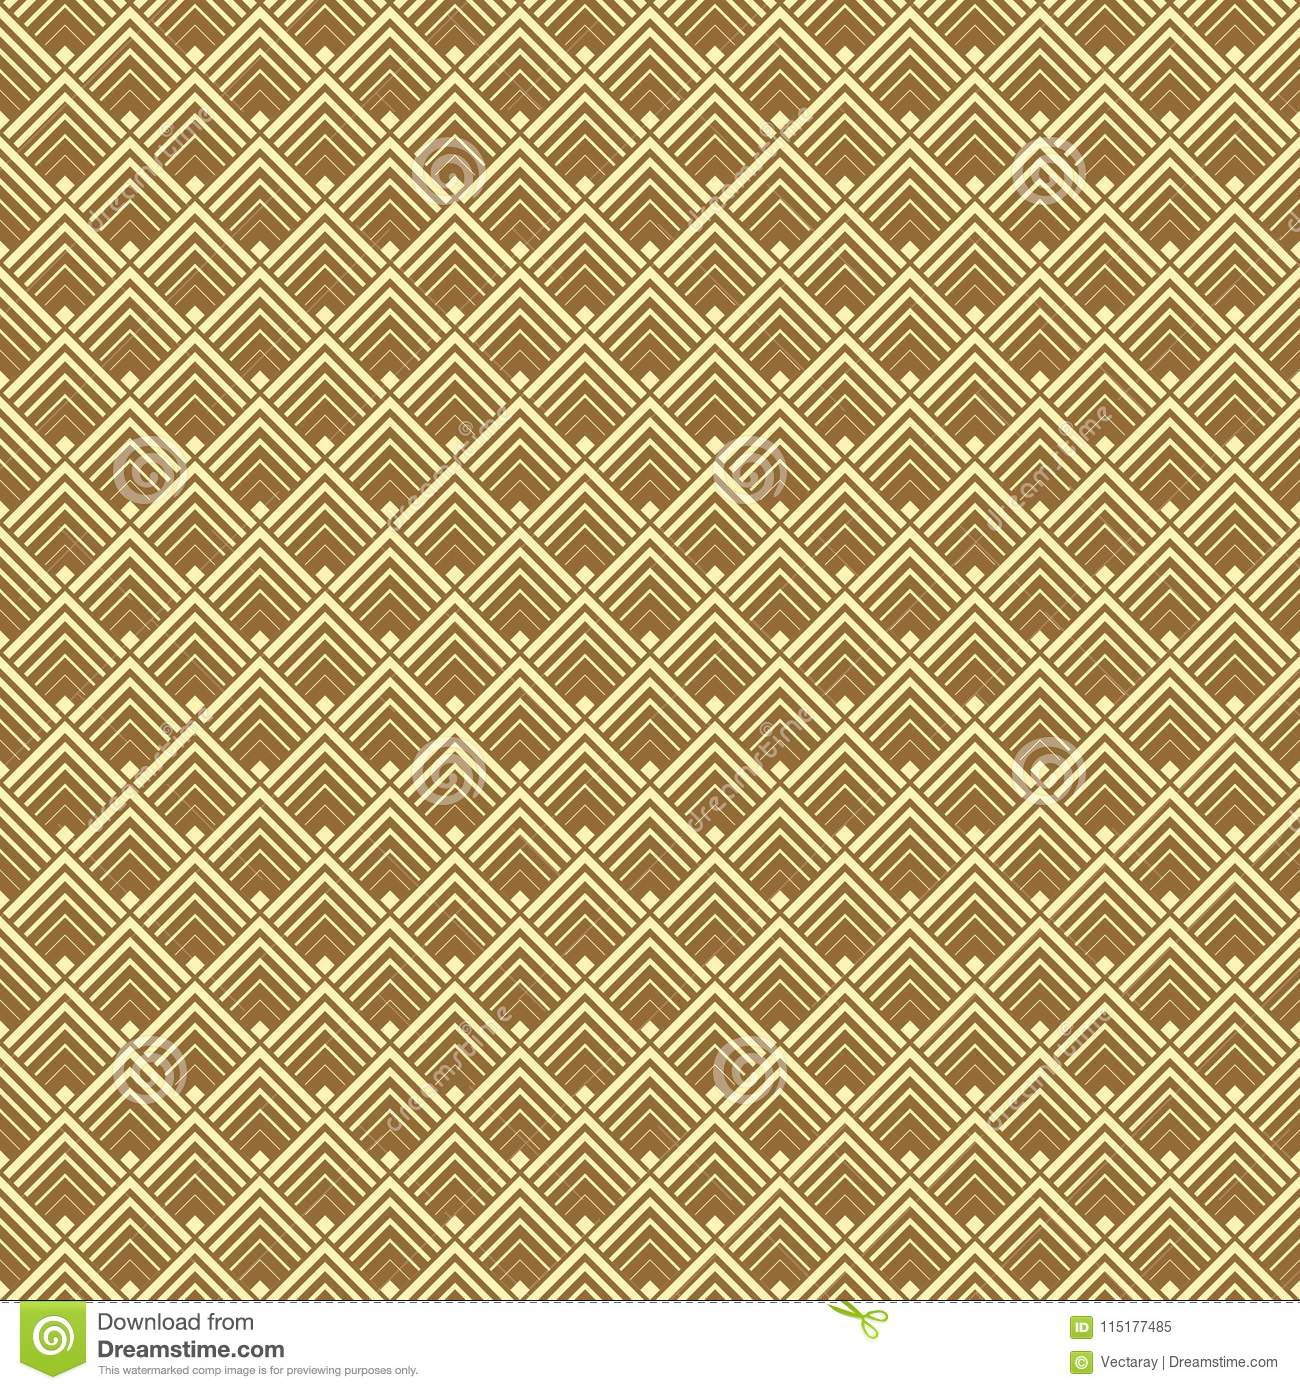 Seamless Geometric Gold Art Deco Pattern Background. Stock